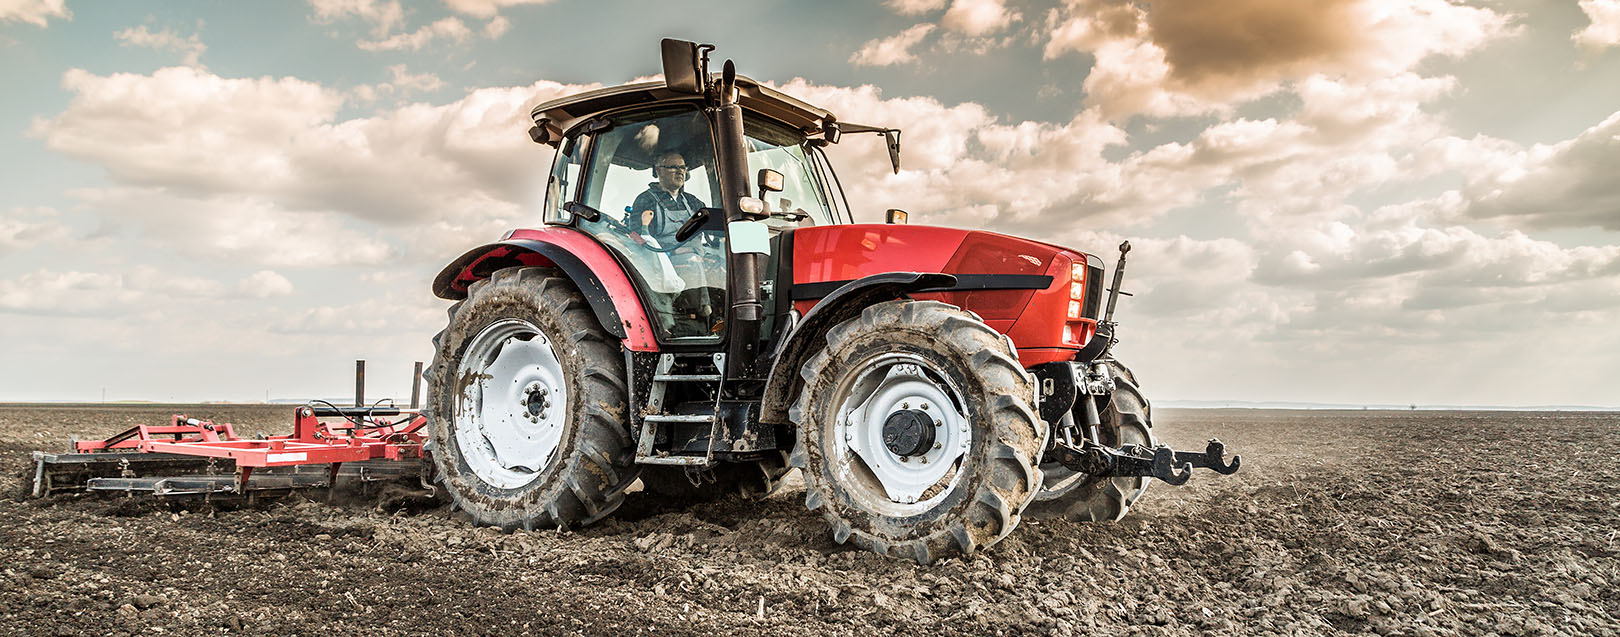 Mahindra tractor exports decline 7% in July